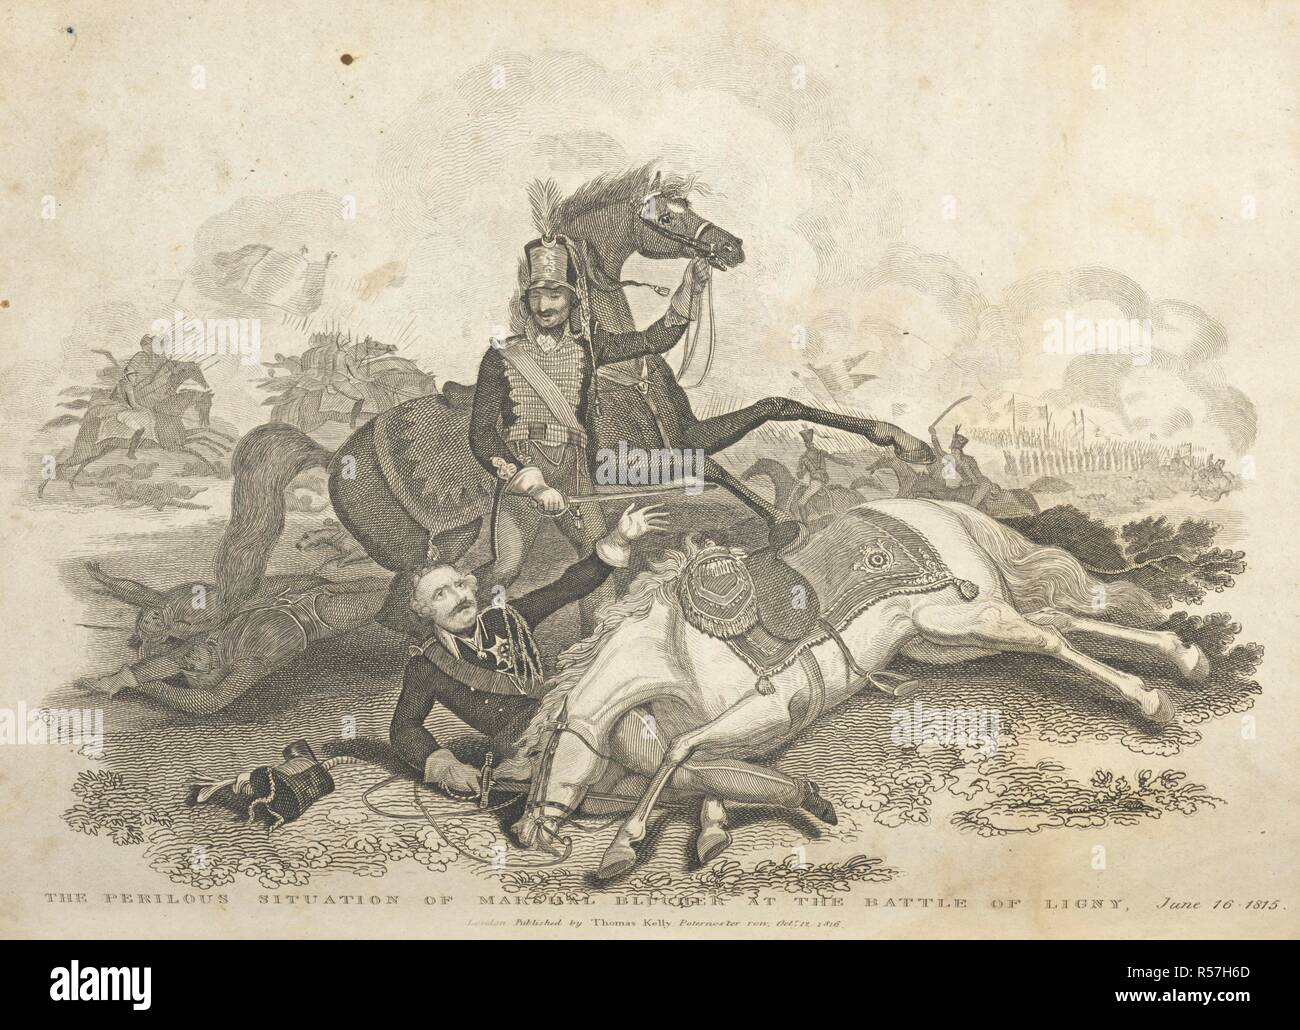 The perilous situation of Marshal Blucher at the Battle of Ligny, June 16, 1815. History of the French Revolution, and of the wars produced by that ... event ...; and the ... Battle of Waterloo. London : T. Kelly, 1820-22. Source: 9525.f.1 volume 2, plate opposite page 43. Author: CHRISTOPHER KELLY. - Stock Image